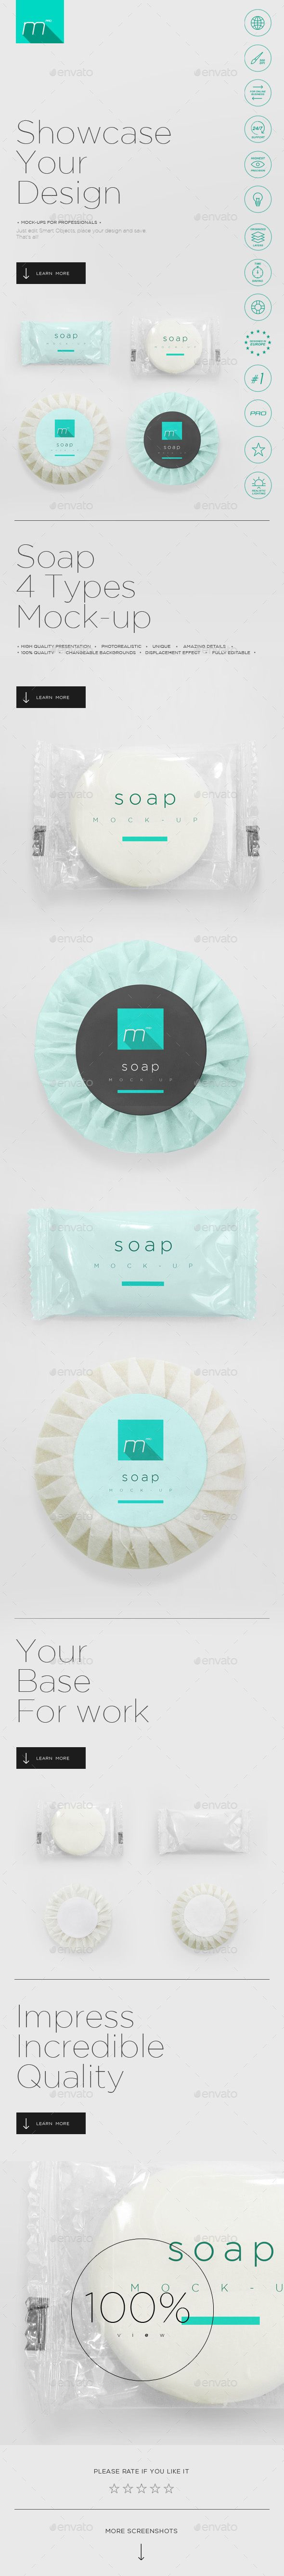 Hotel Soap Mockup — Photoshop PSD #up #mock • Available here → https://graphicriver.net/item/hotel-soap-mockup/14295623?ref=pxcr